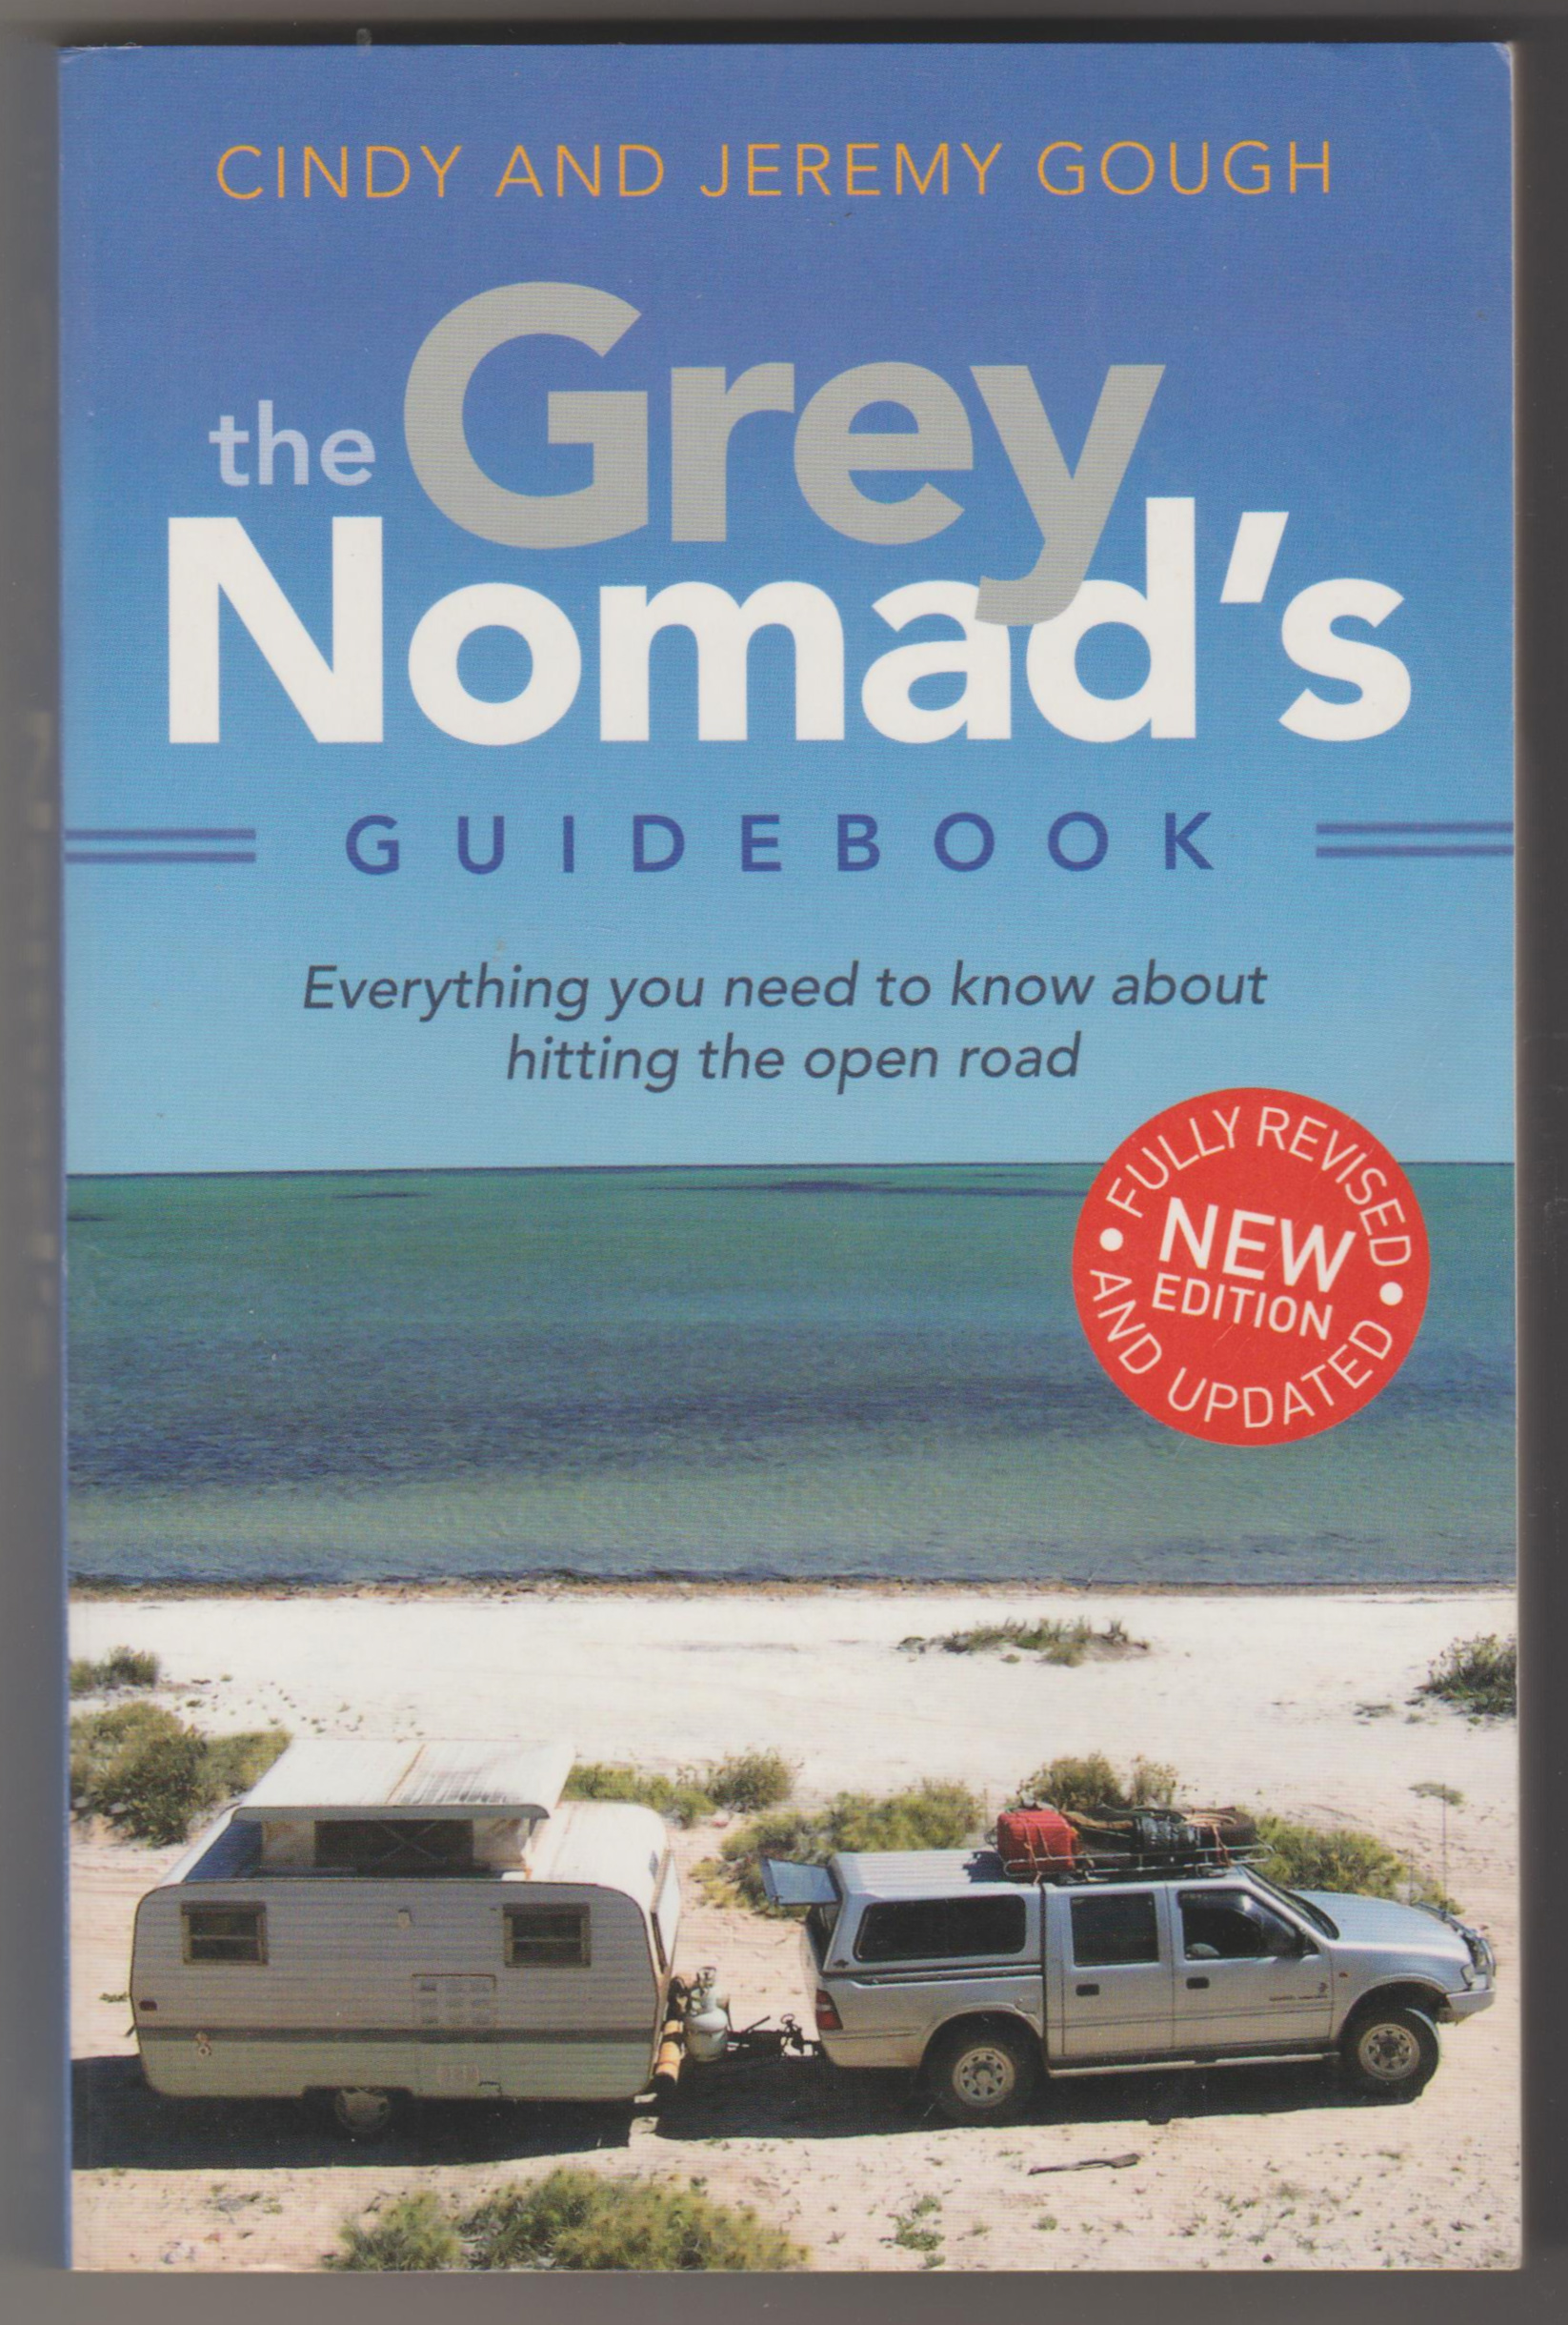 Image for THE GREY NOMAD'S GUIDEBOOK